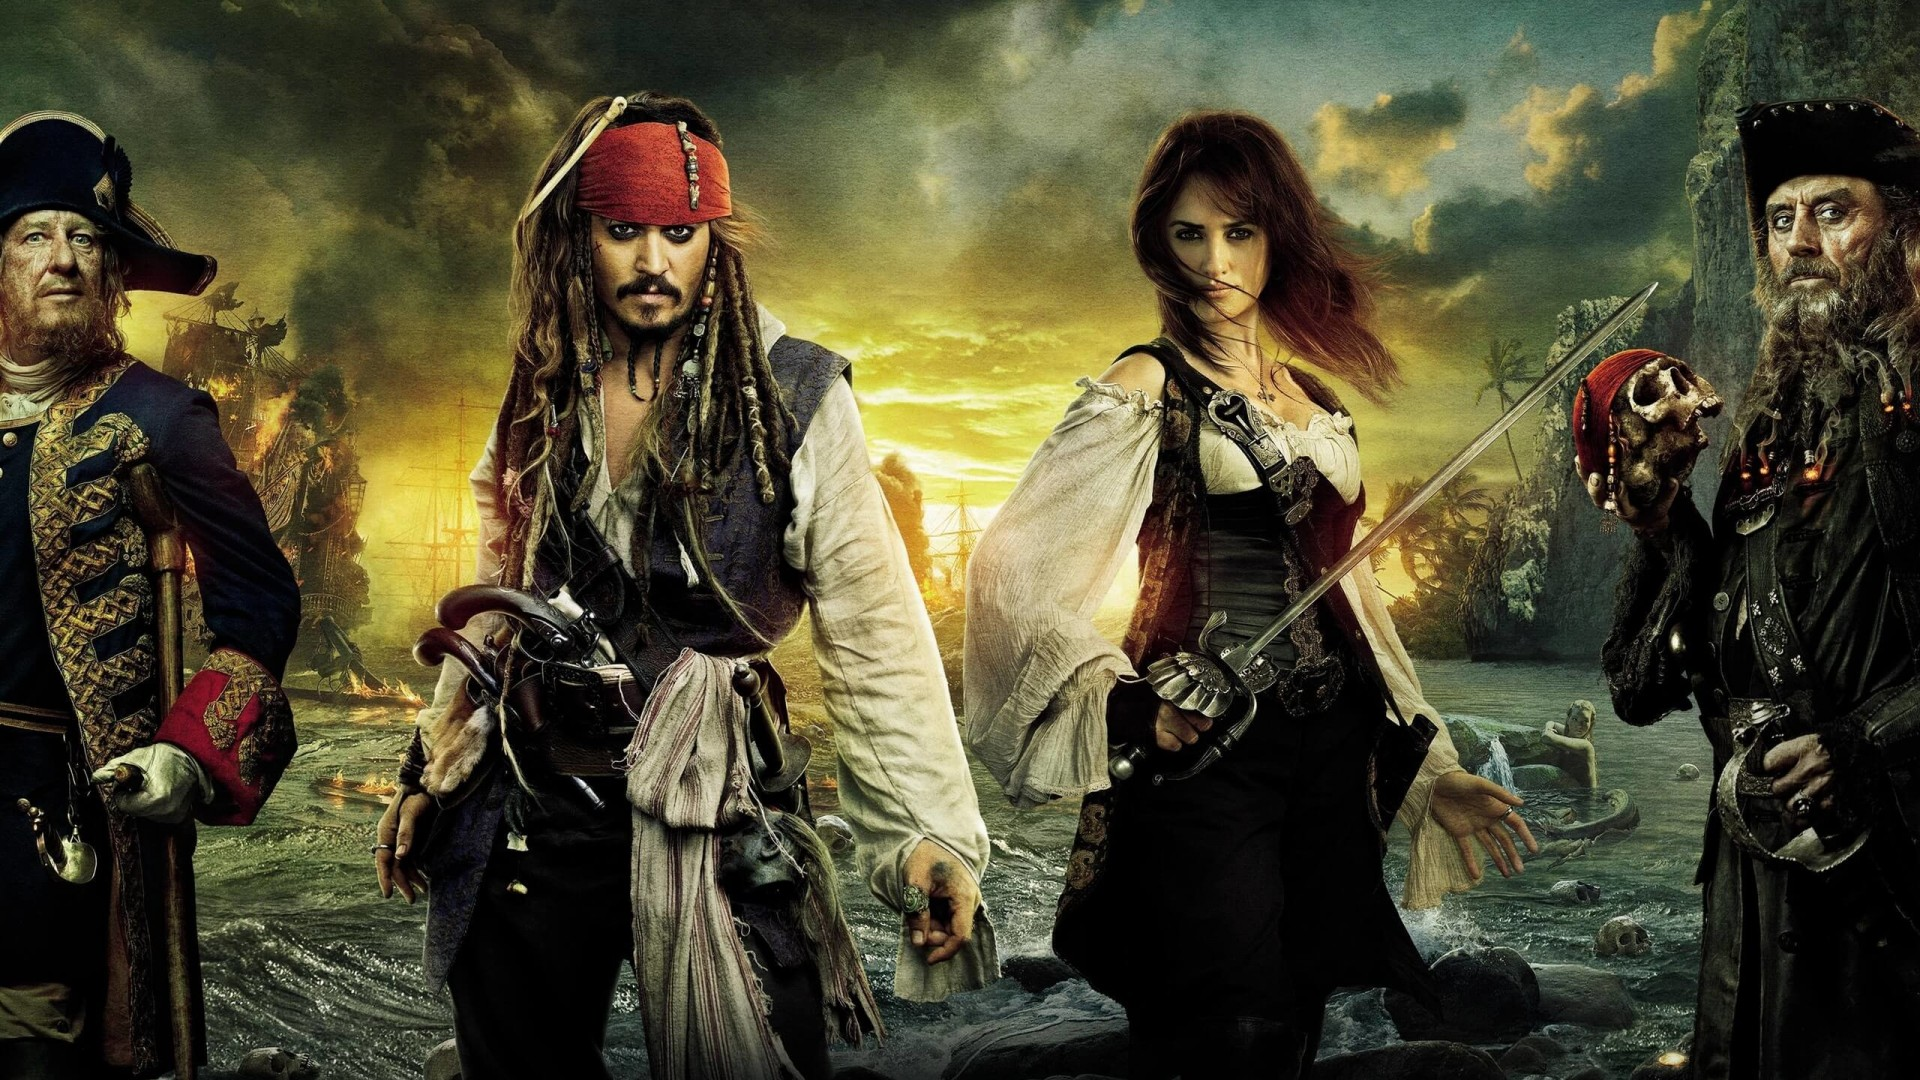 Pirates of the Caribbean: On Stranger Tides Characters Wallpaper for Desktop 1920x1080